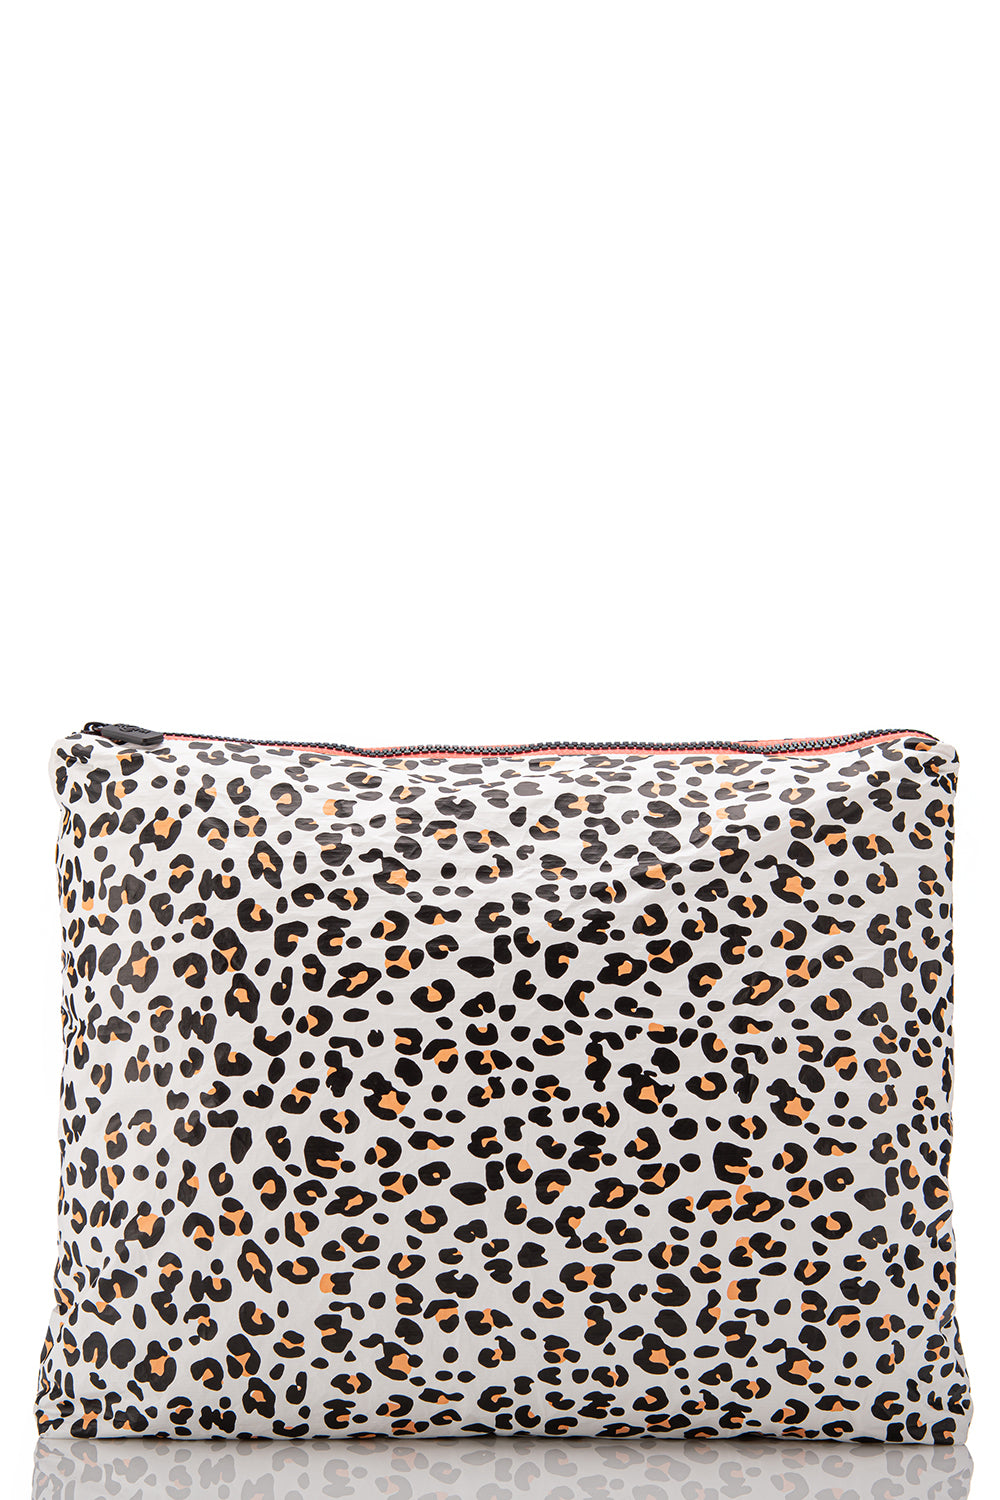 ALOHA Collection Samudra Max Leopard Cub Pouch